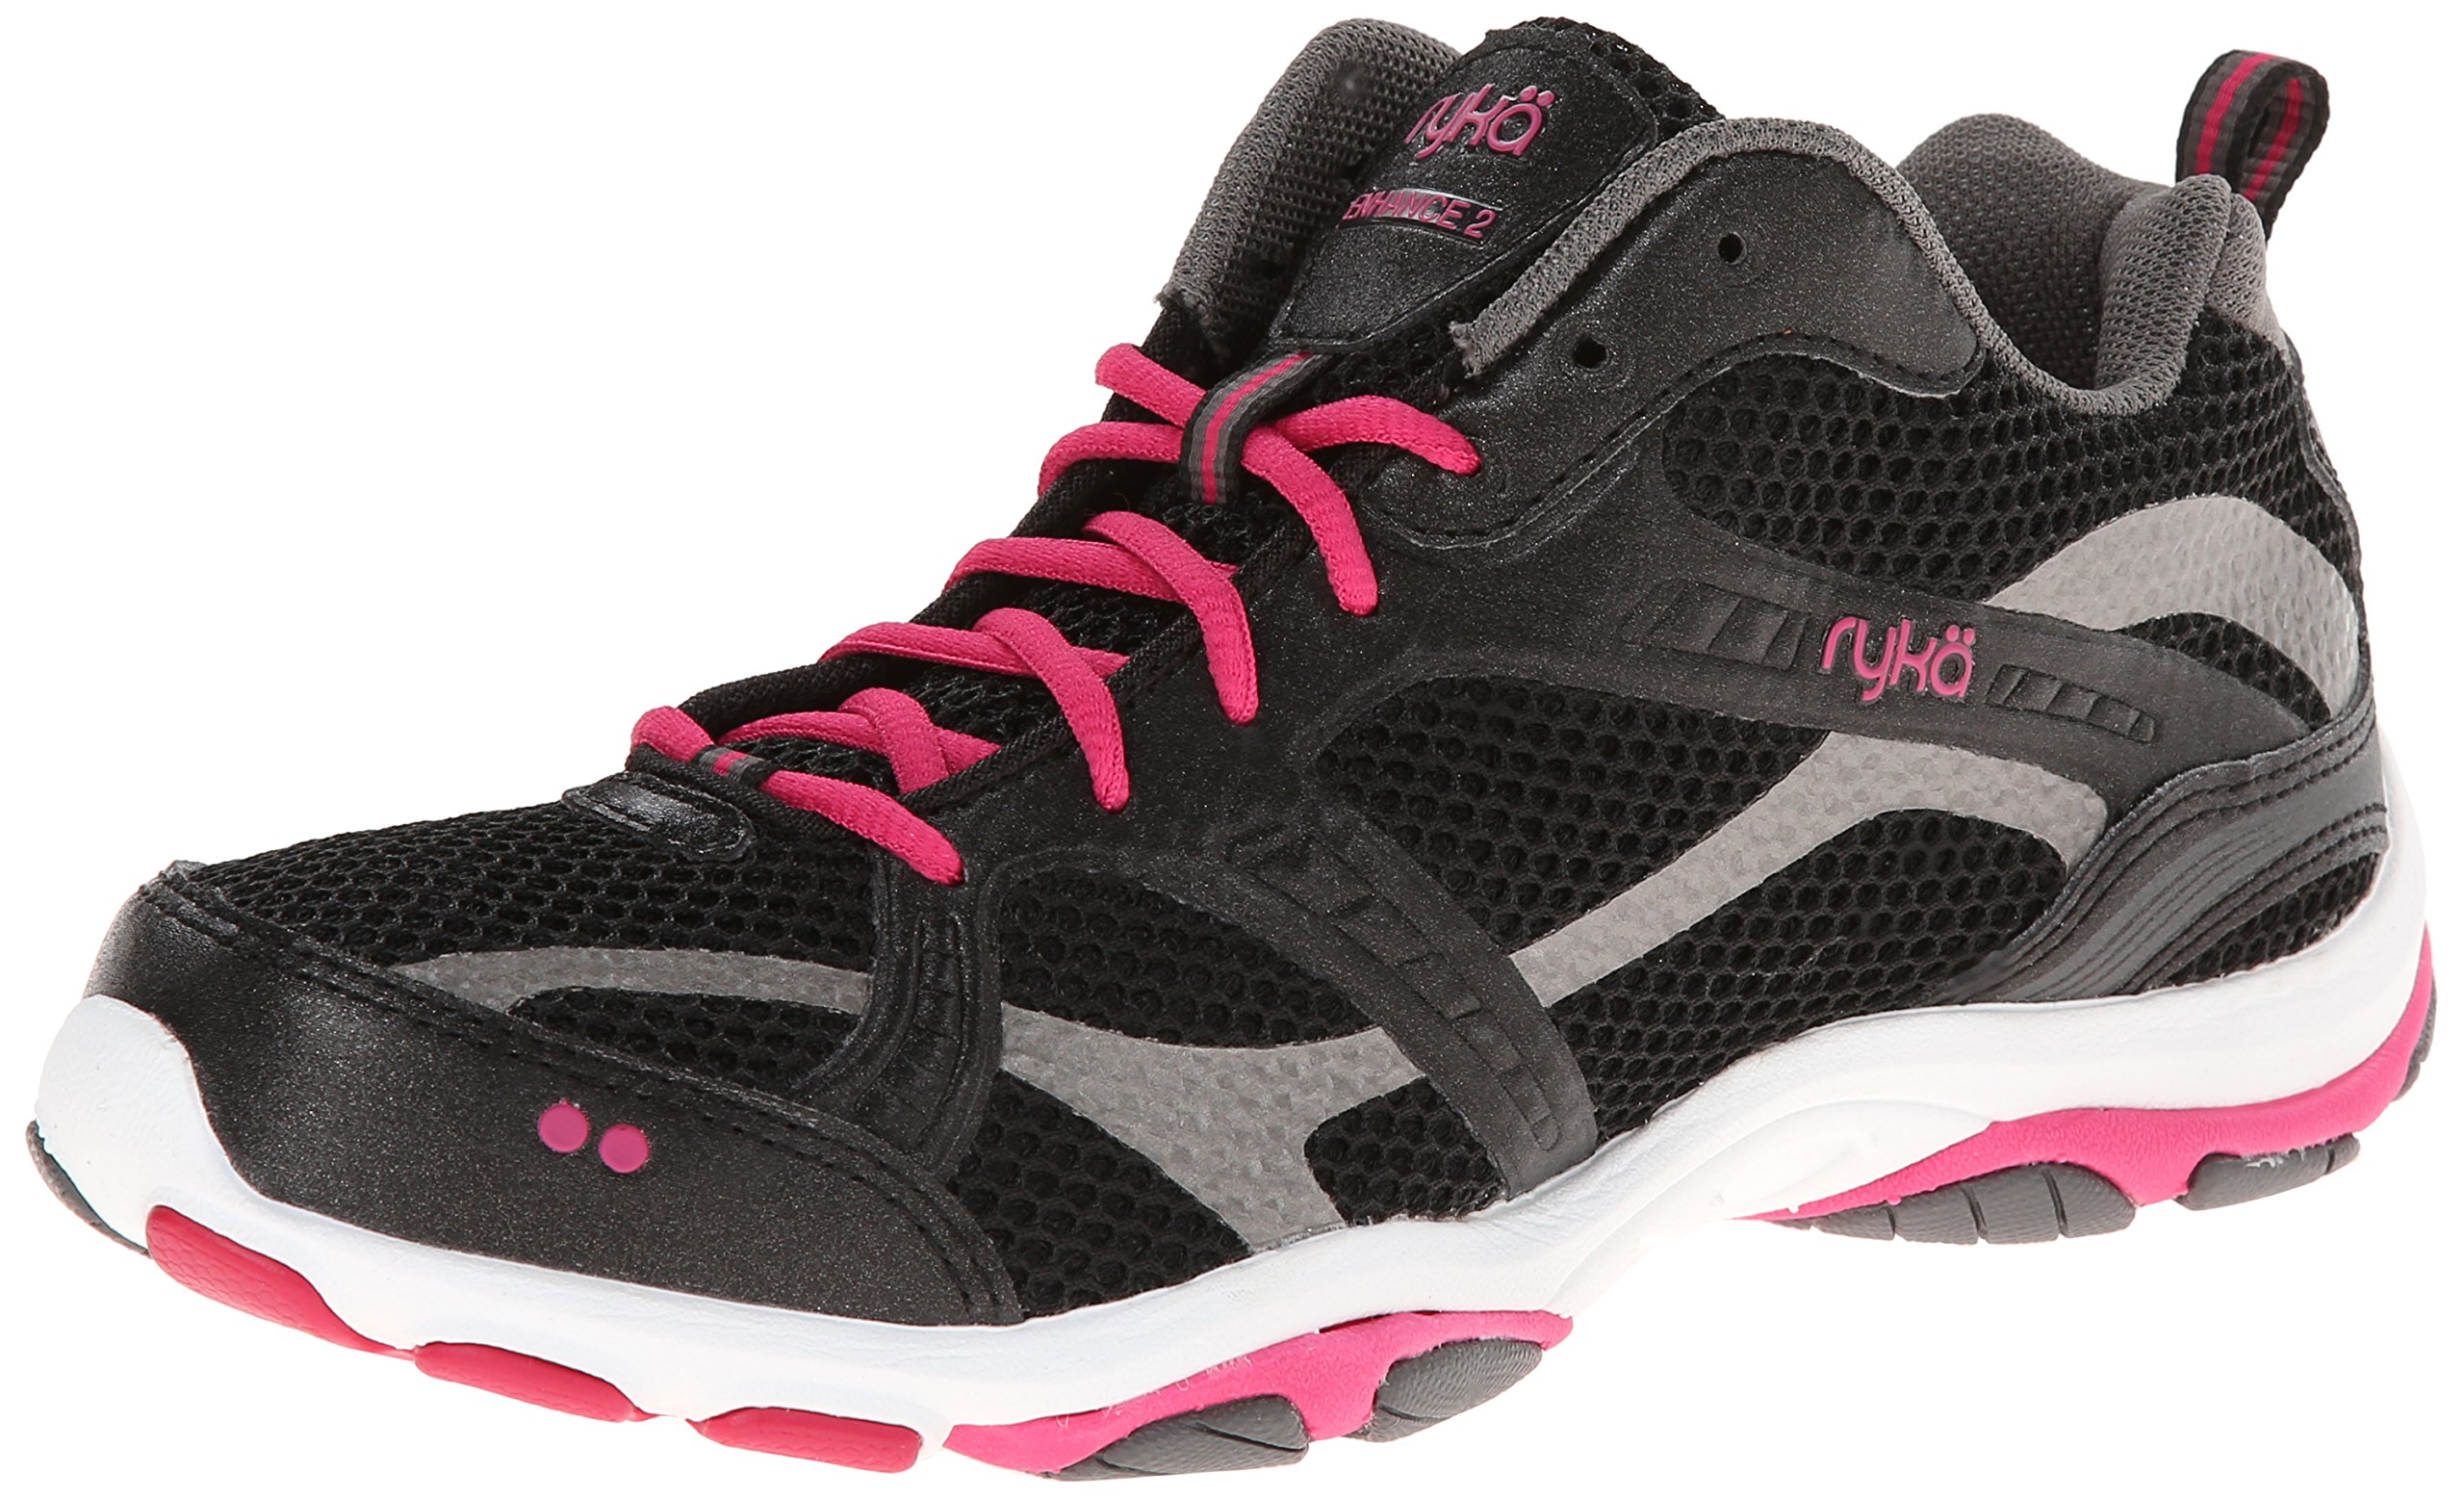 Ryka Women's Enhance 2 Cross-Training Shoe, Black/Zumba Pink/Metallic Steel Grey, 6.5 M US